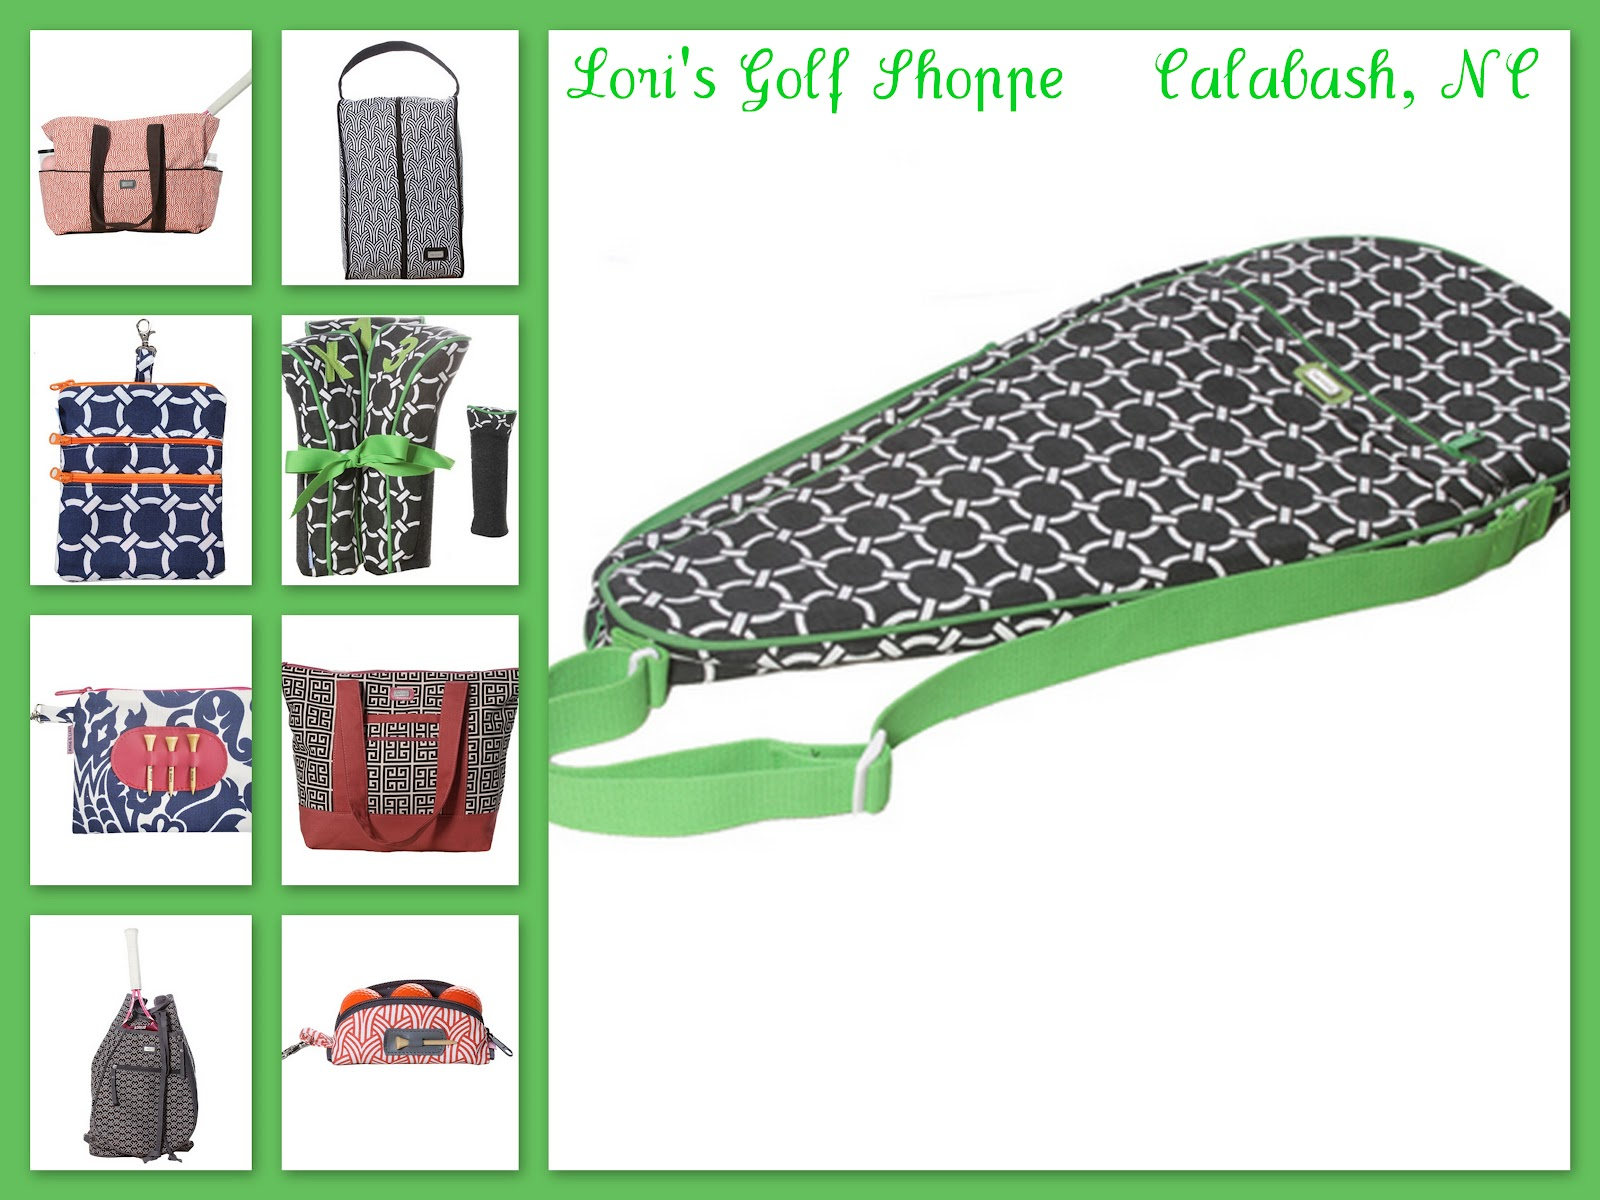 new concept 3efc8 fd1a3 Golf  Tennis  Stylish and practical accessories  Just call on Ame   LuLu  for the latest in their golf and tennis collection. They offer classic, fun  and ...